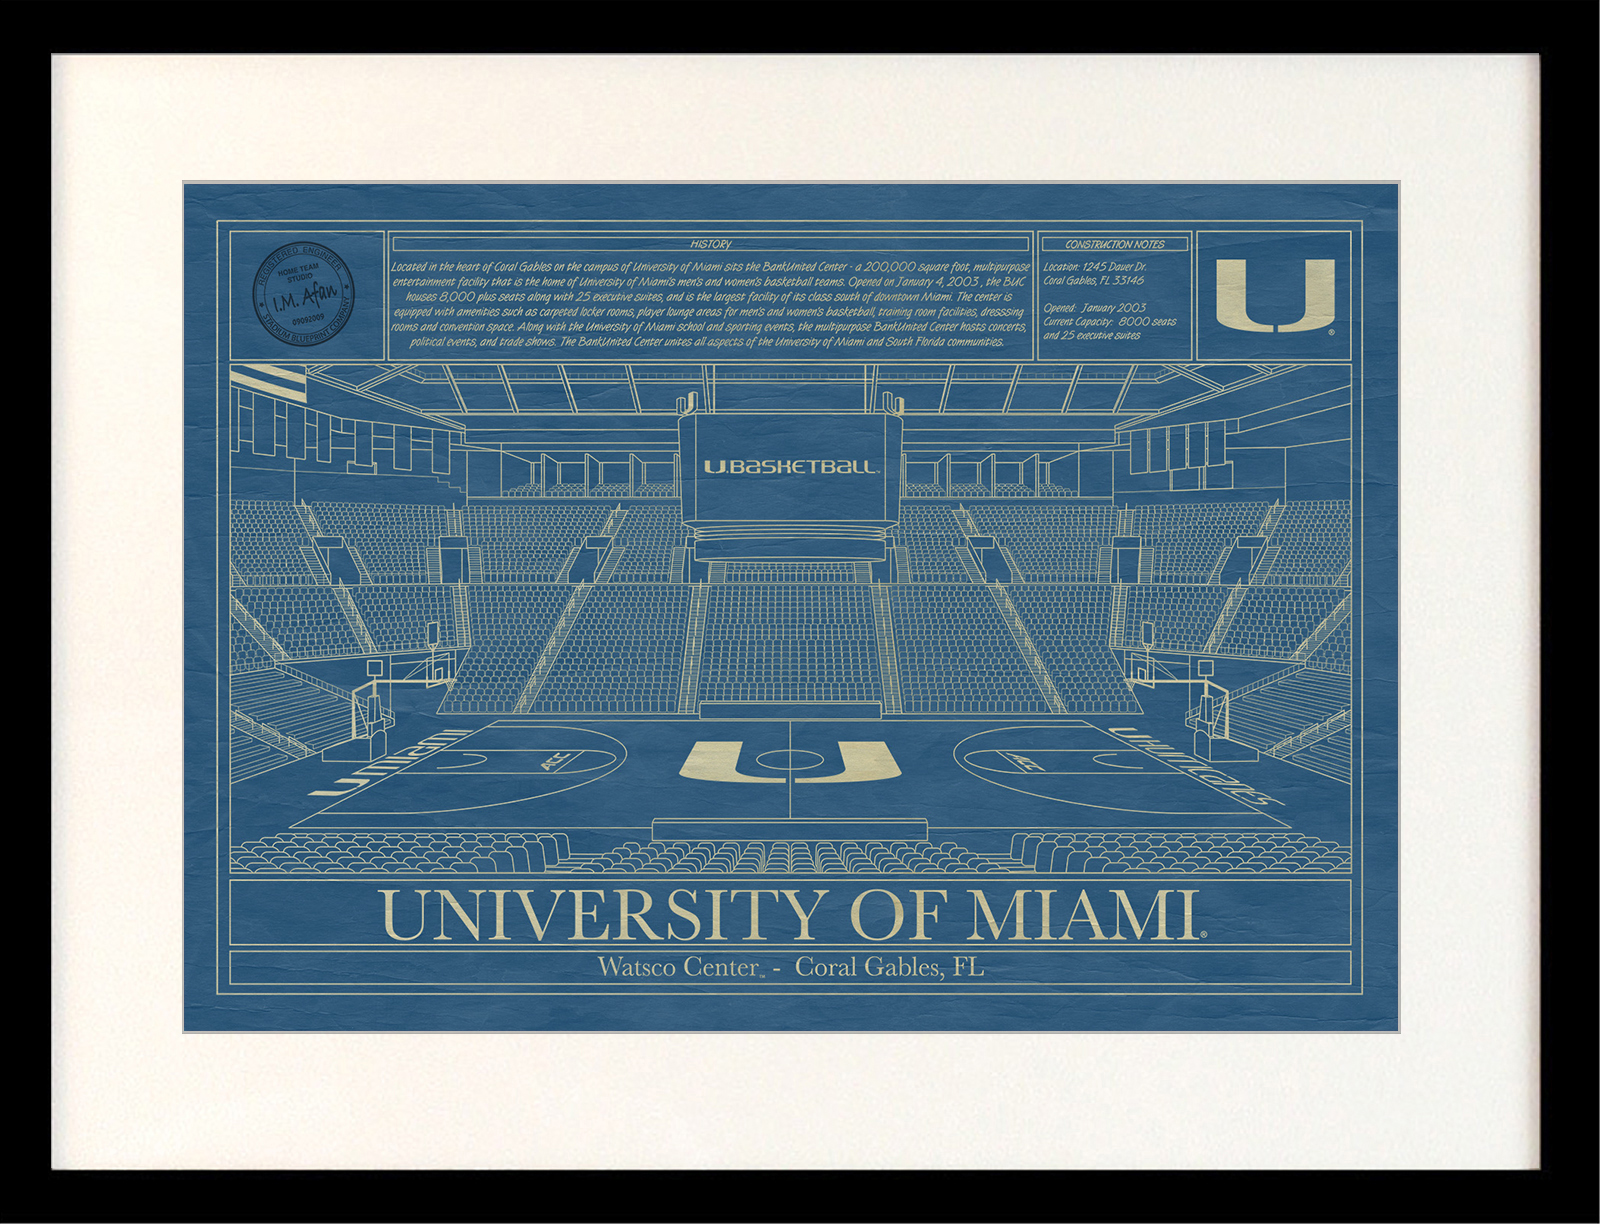 Miami wastco center blueprint art stadium blueprint company click malvernweather Choice Image